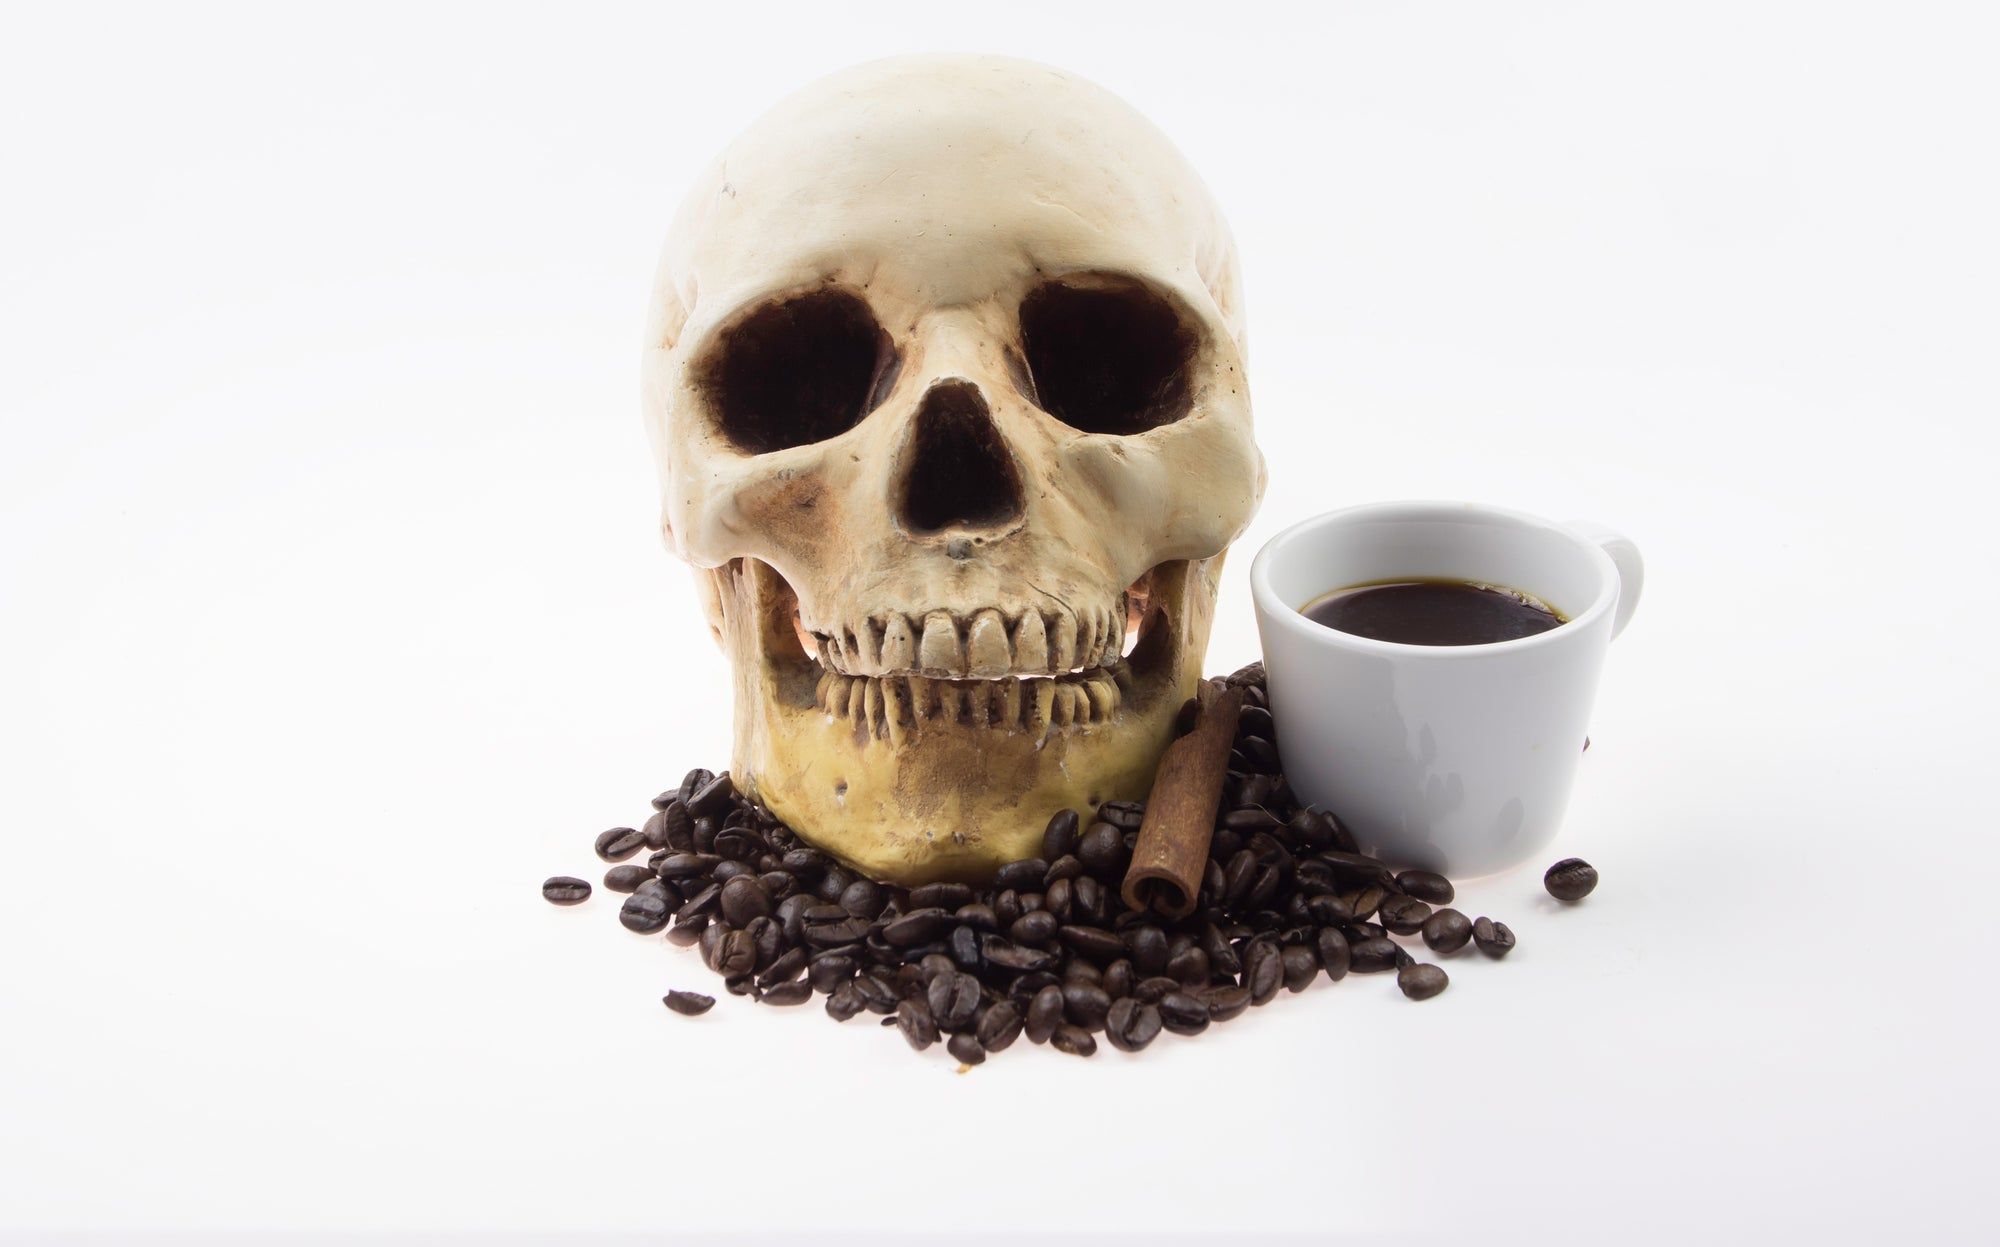 a skull and some coffee beans